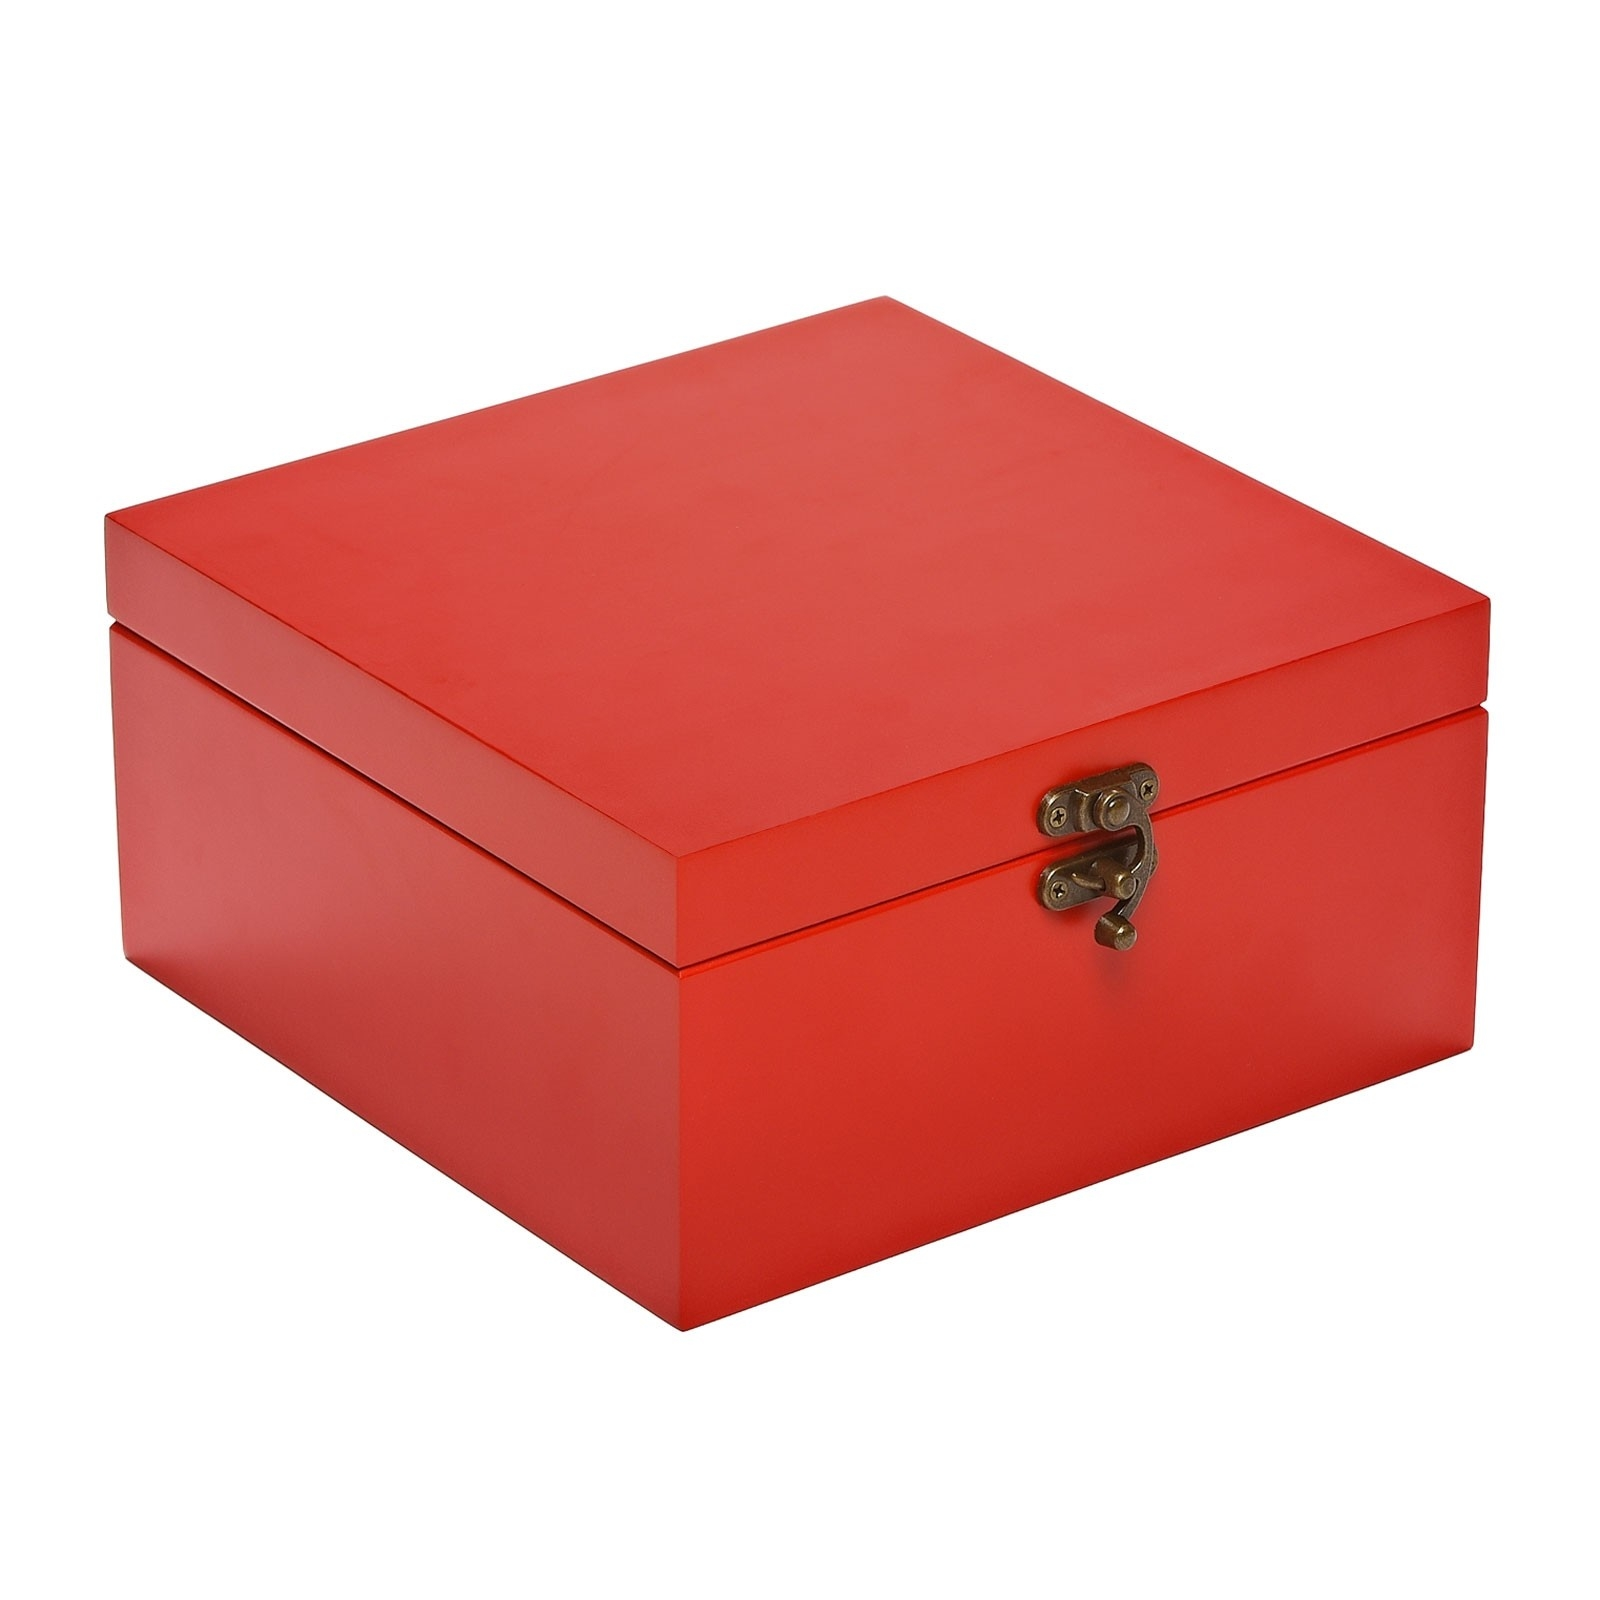 Red & White Painted Boxes & Gifts